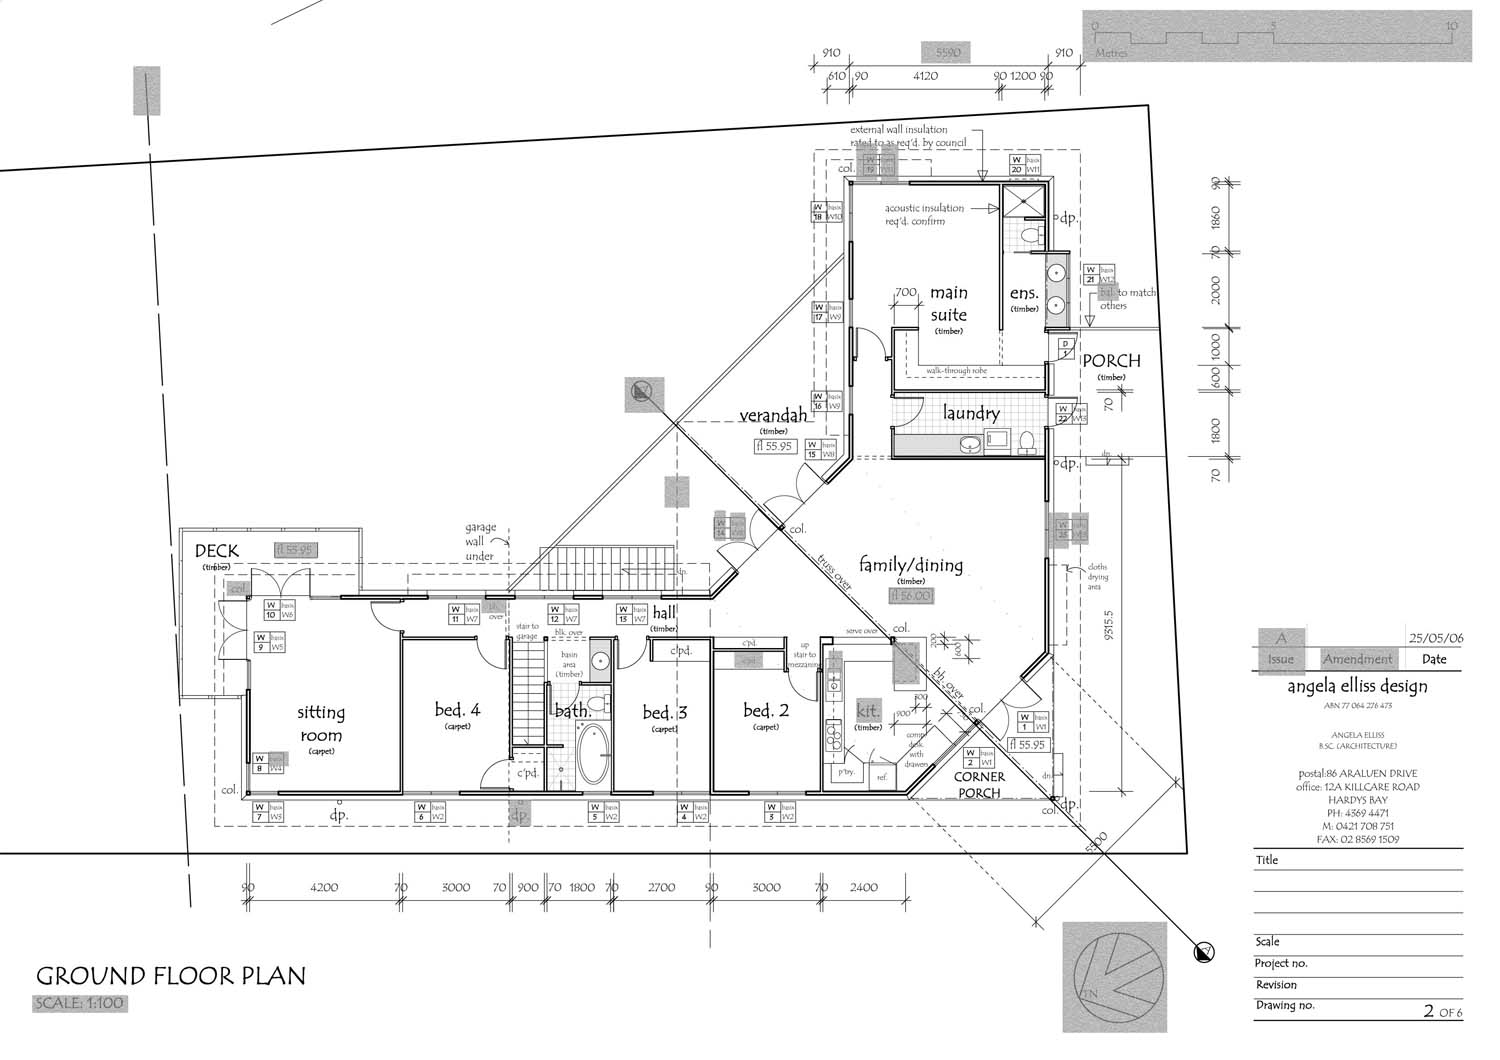 how to read house construction plansResidential Wiring Blueprint Furthermore Small Powder Room Floor Plans #16